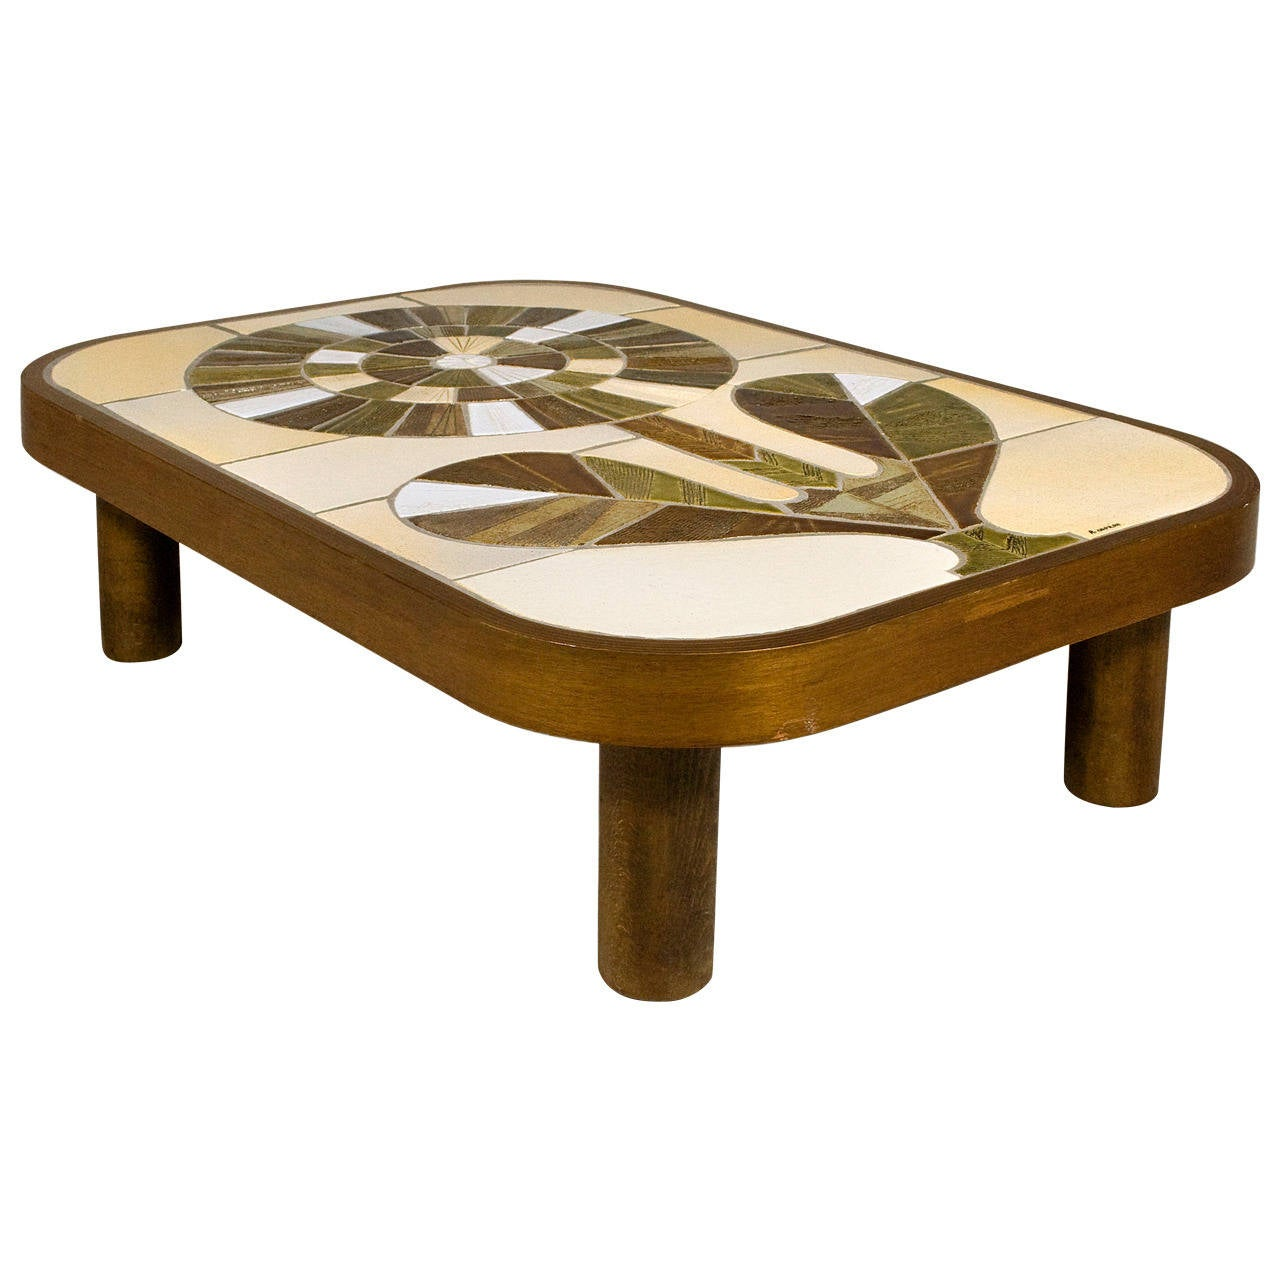 Roger Capron Ceramic Coffee Table Circa 1960 France At 1stdibs